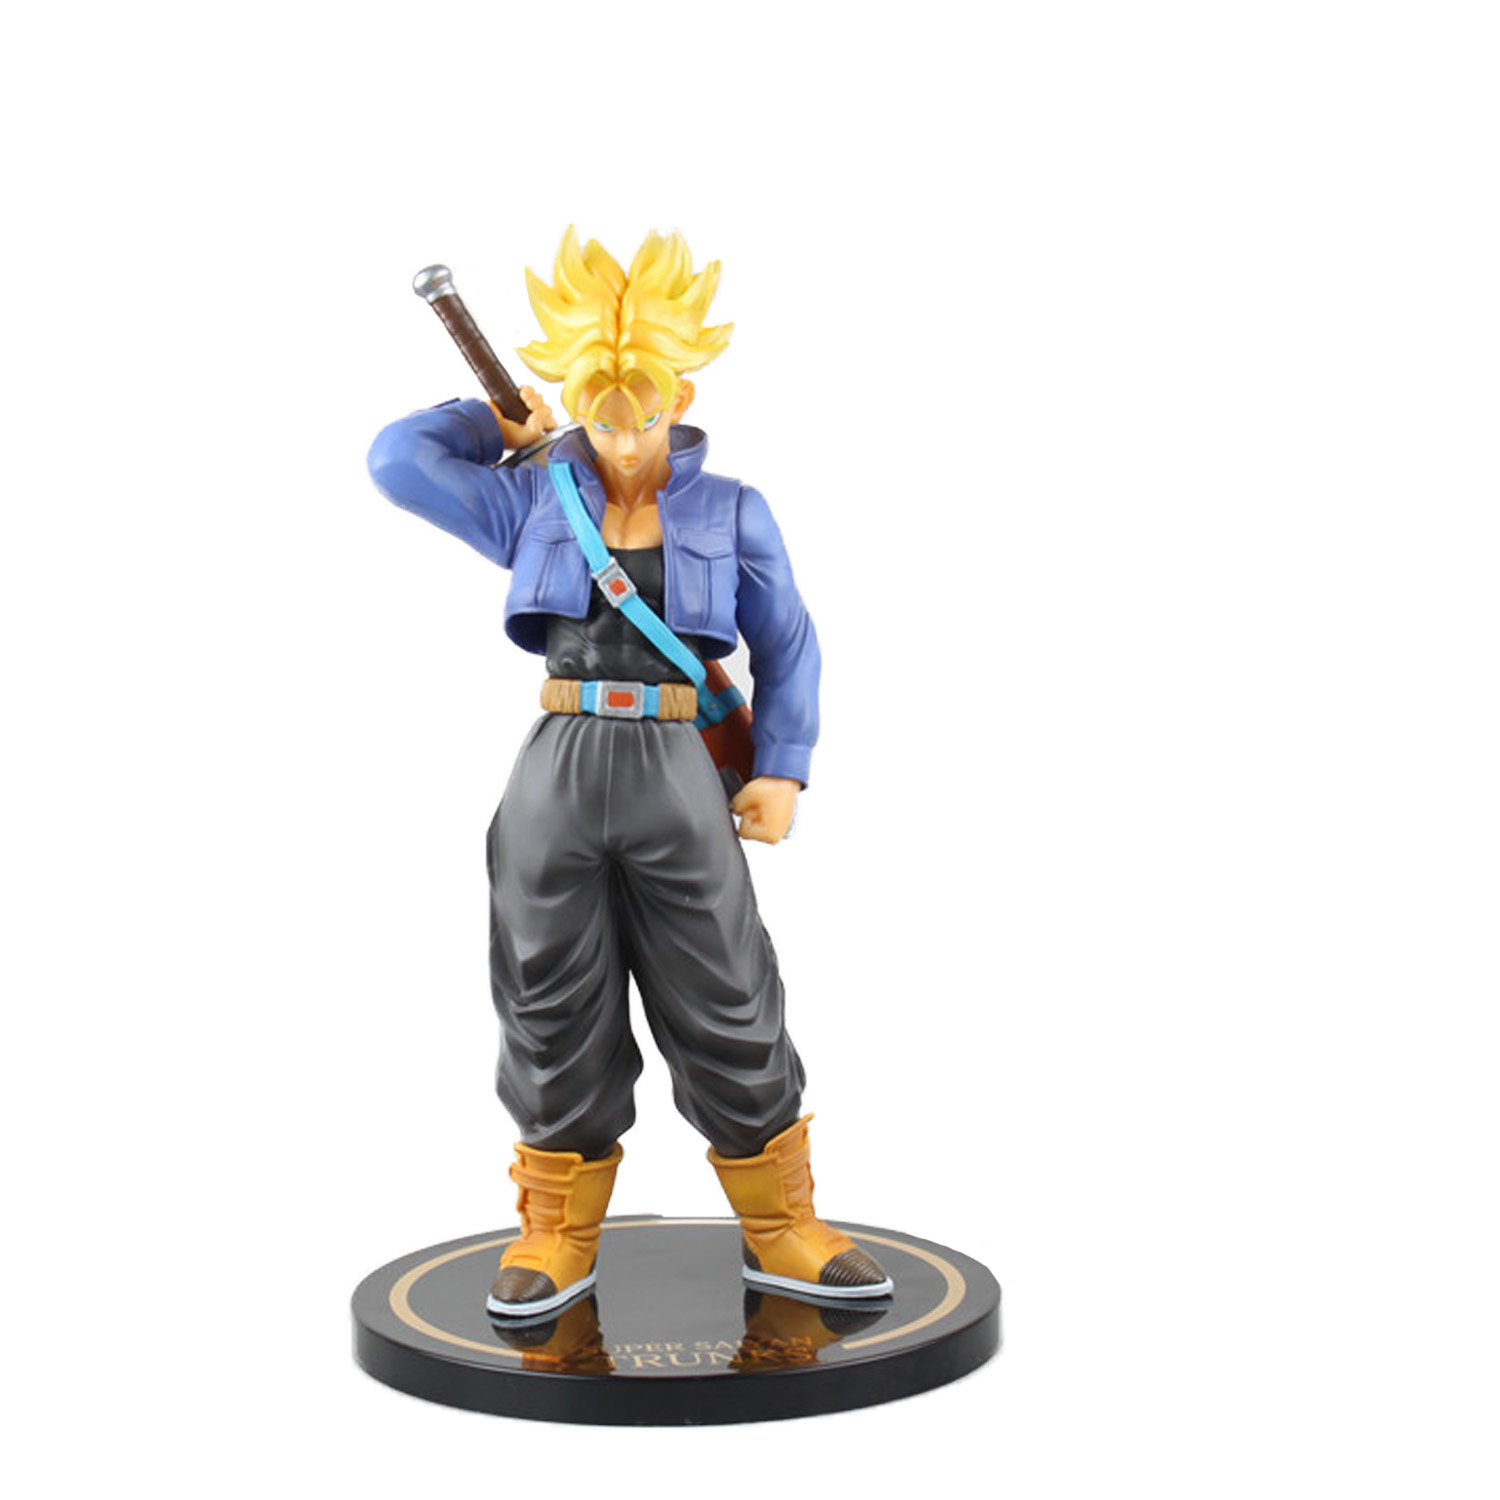 Chanycore Anime Dragon Ball Z 24CM Super saiyan TRUNKS MH Figuarts Zero EX VEGETA Action Figures PVC Limit ForCollectible Toy anime dragon ball figuarts zero super saiyan 3 gotenks pvc action figure collectible model toy 16cm kt1904